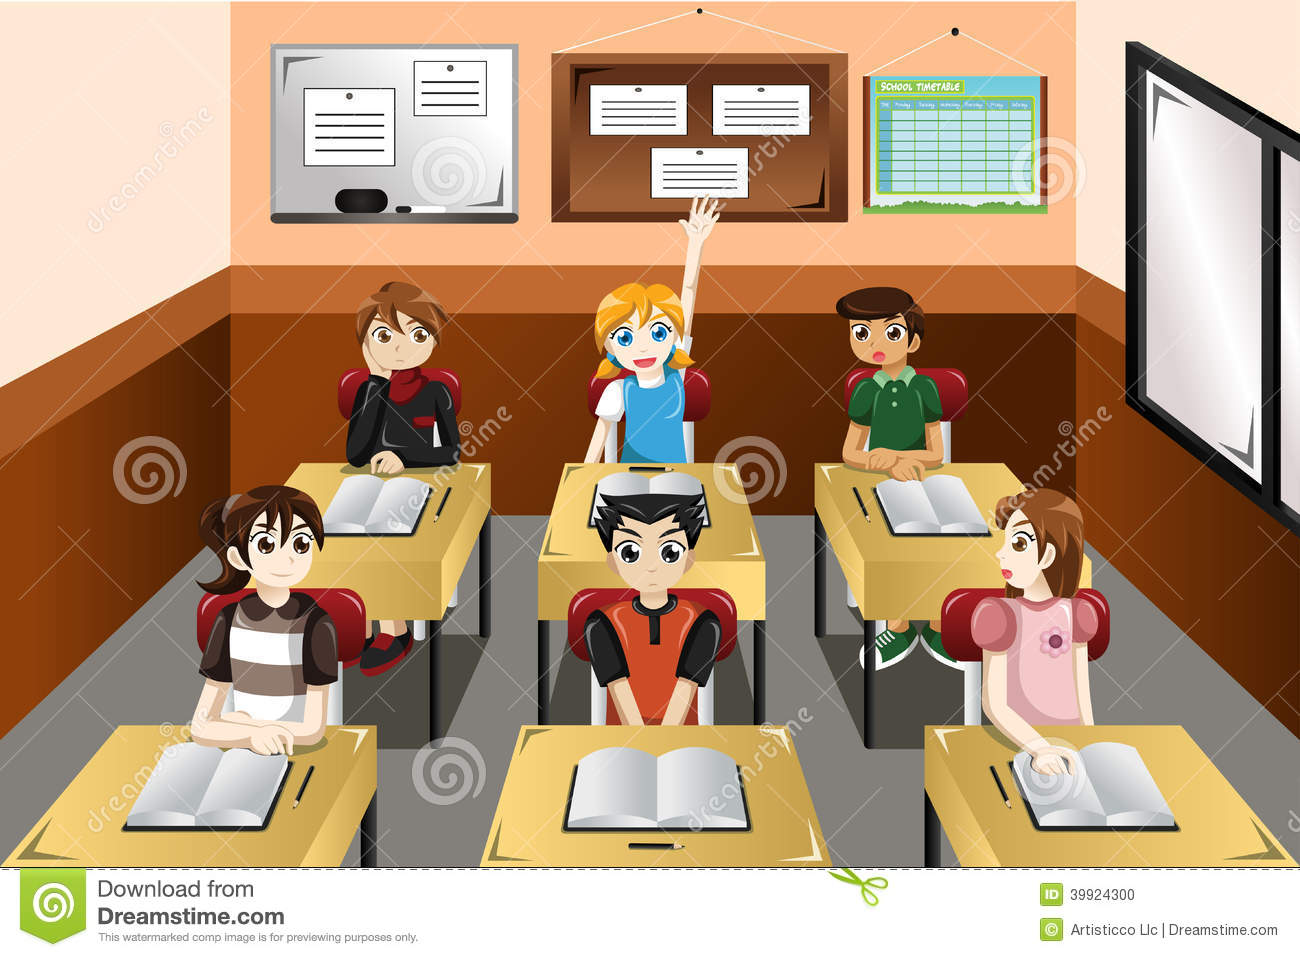 kids in classroom clipart panda free clipart images rh clipartpanda com classroom clipart invention steam engine classroom clipart christmas pixie